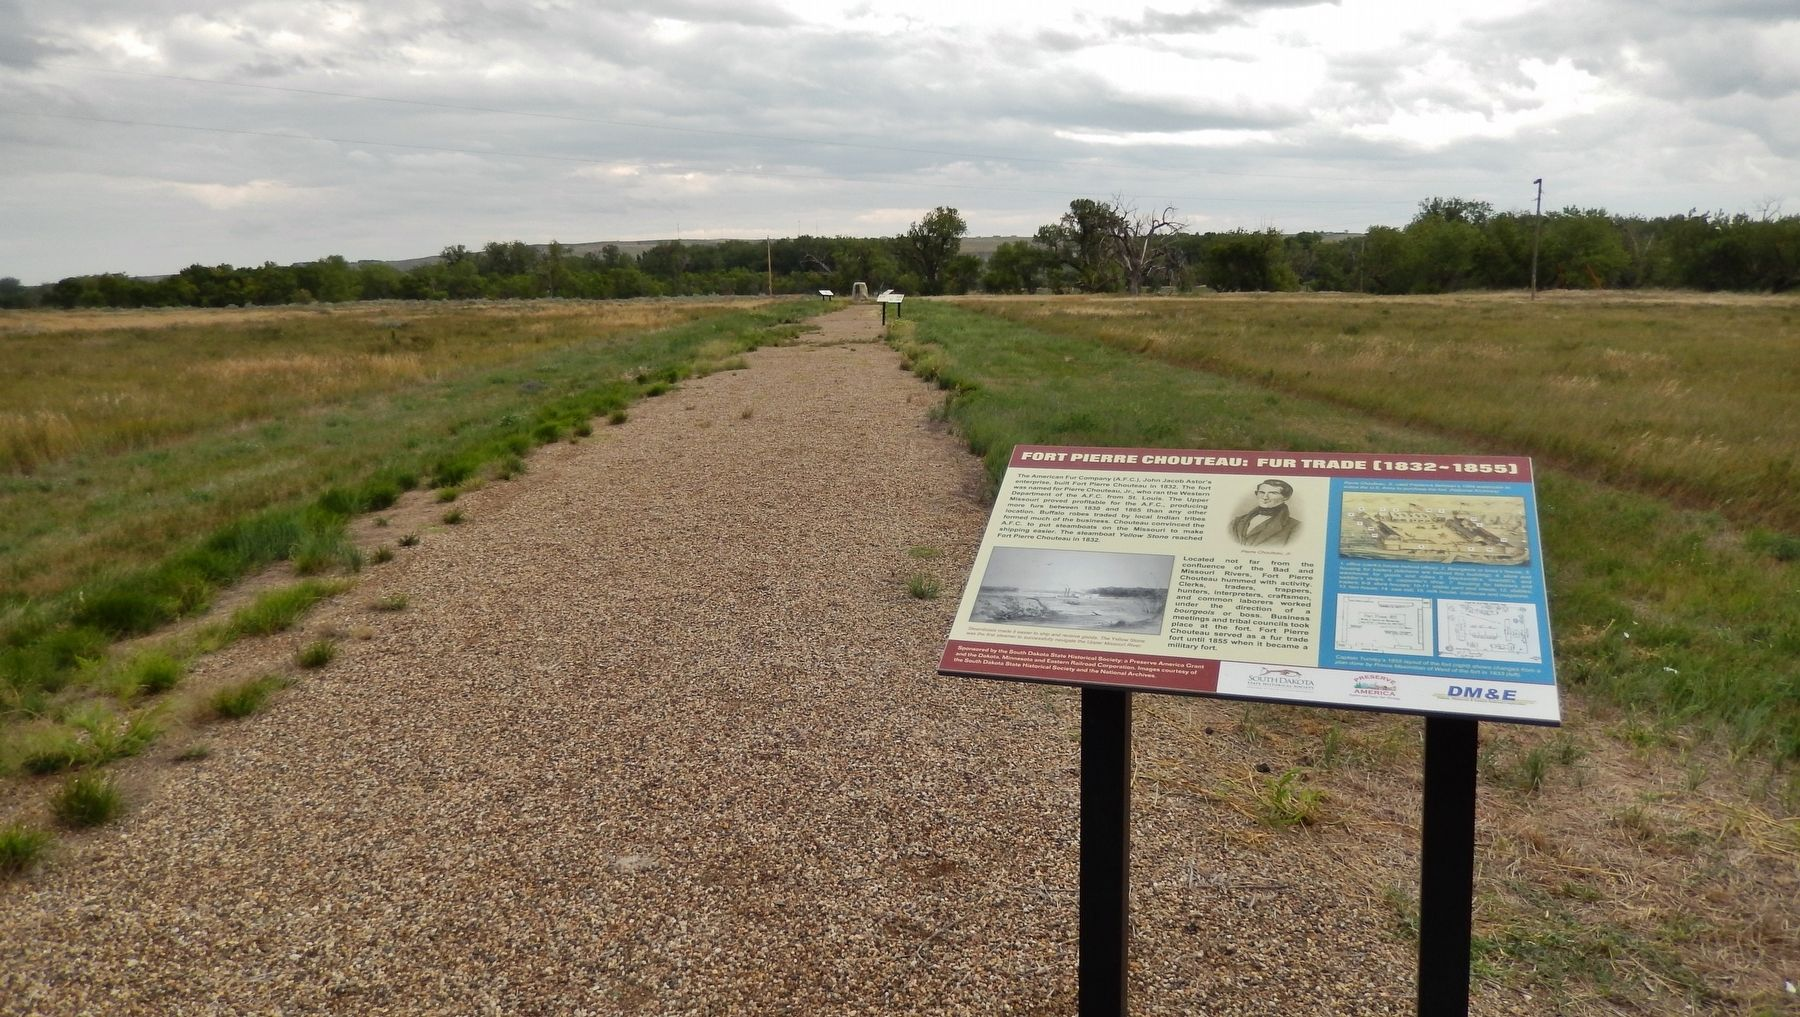 Fort Pierre Chouteau: Fur Trade (1832-1855) Marker (<i>wide view</i>) image. Click for full size.